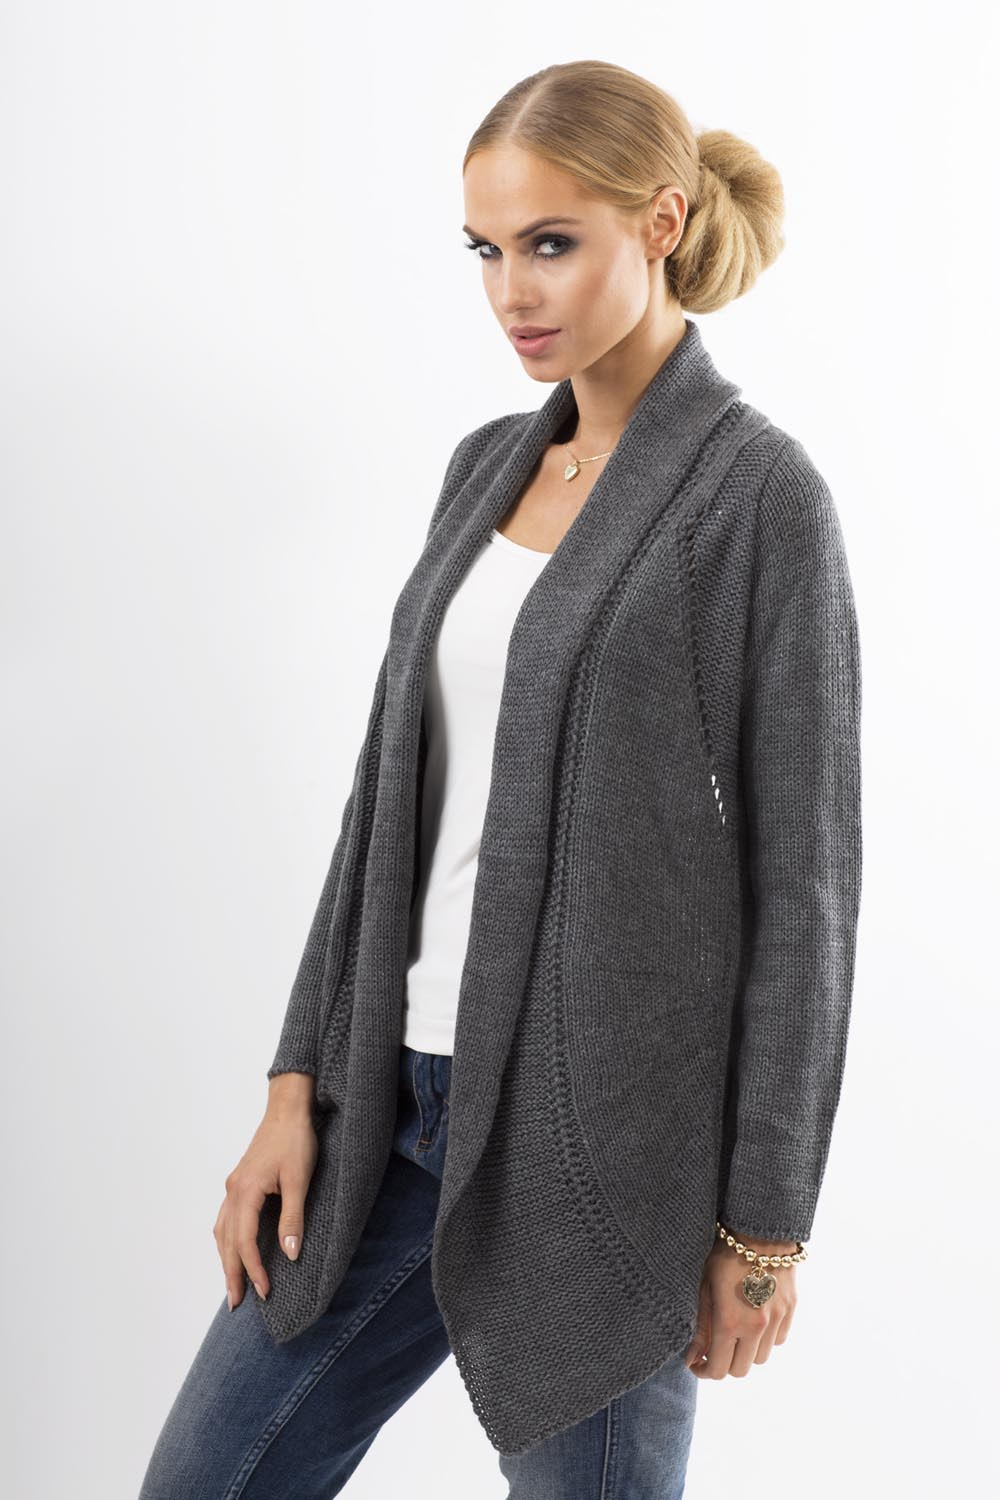 Knitting Pattern Cardigan Shawl Collar : Graphite Shawl Collar Ladies Cardigan with Eyelet Knit Pattern